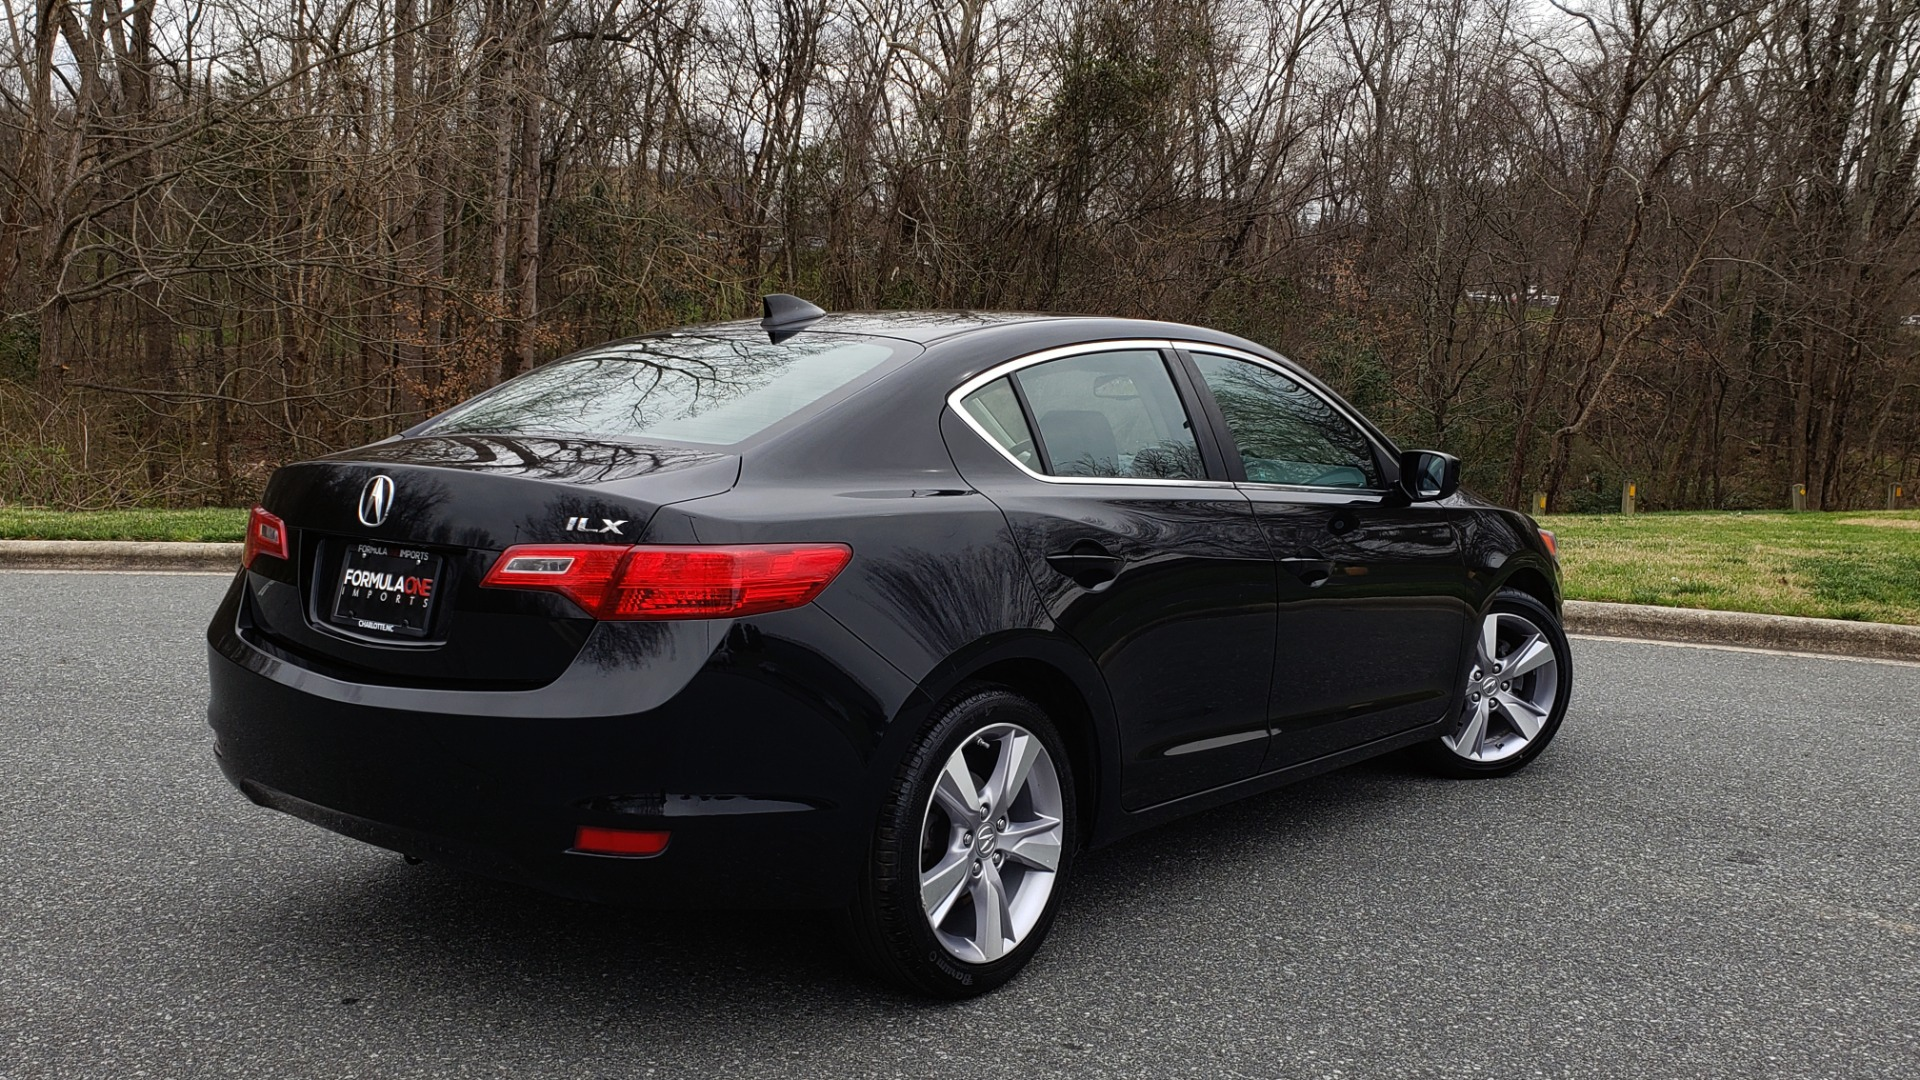 Used 2013 Acura ILX TECH PKG / SUNROOF / NAV / DUAL-ZONE A/C / REARVIEW for sale Sold at Formula Imports in Charlotte NC 28227 6